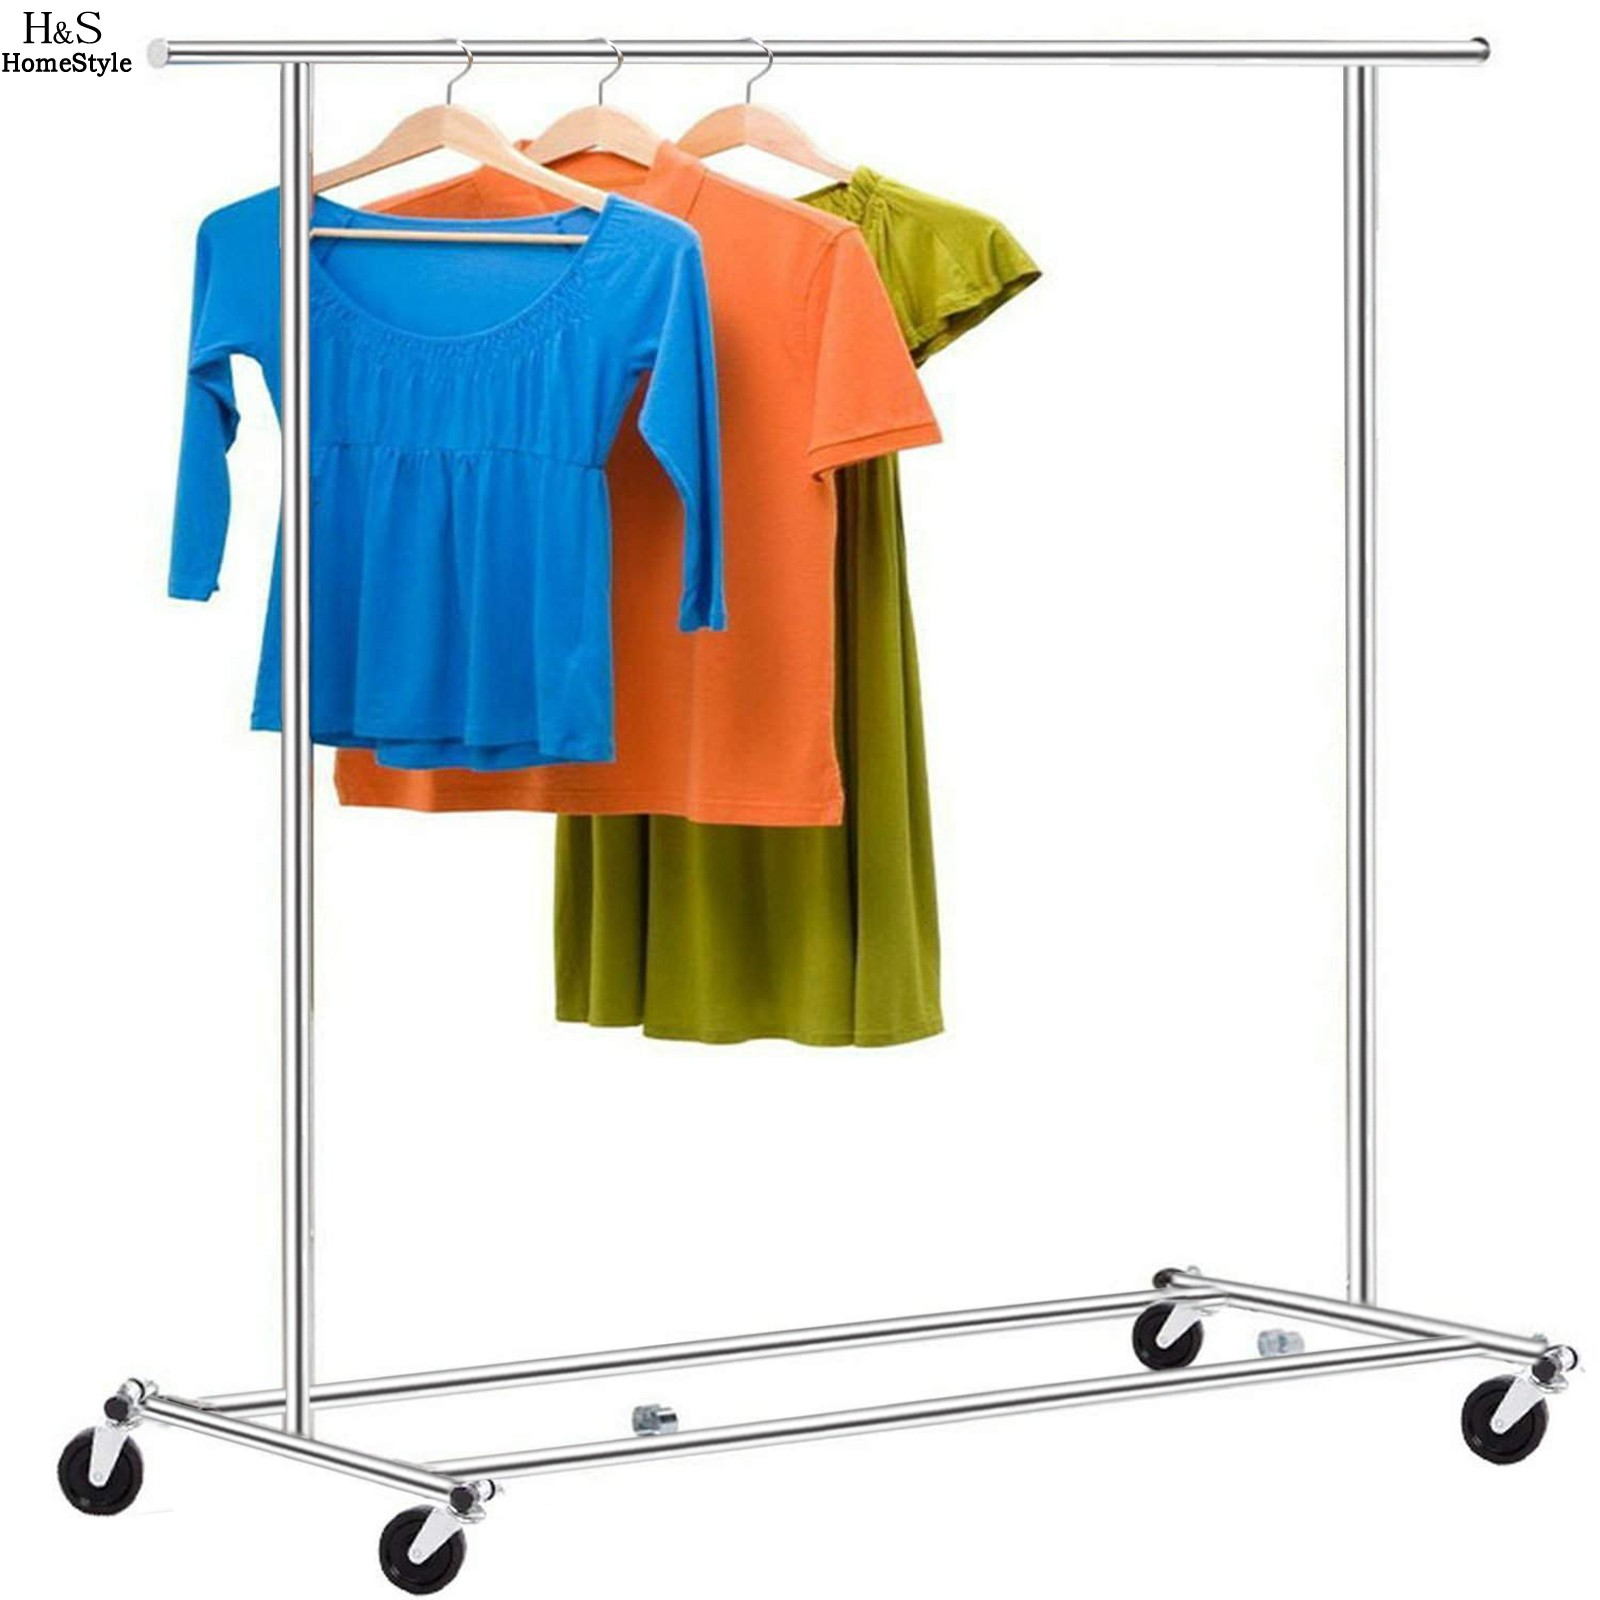 homdox adjustable portable clothes hangers garment drying display hanging racks with rolling wheels n2523china